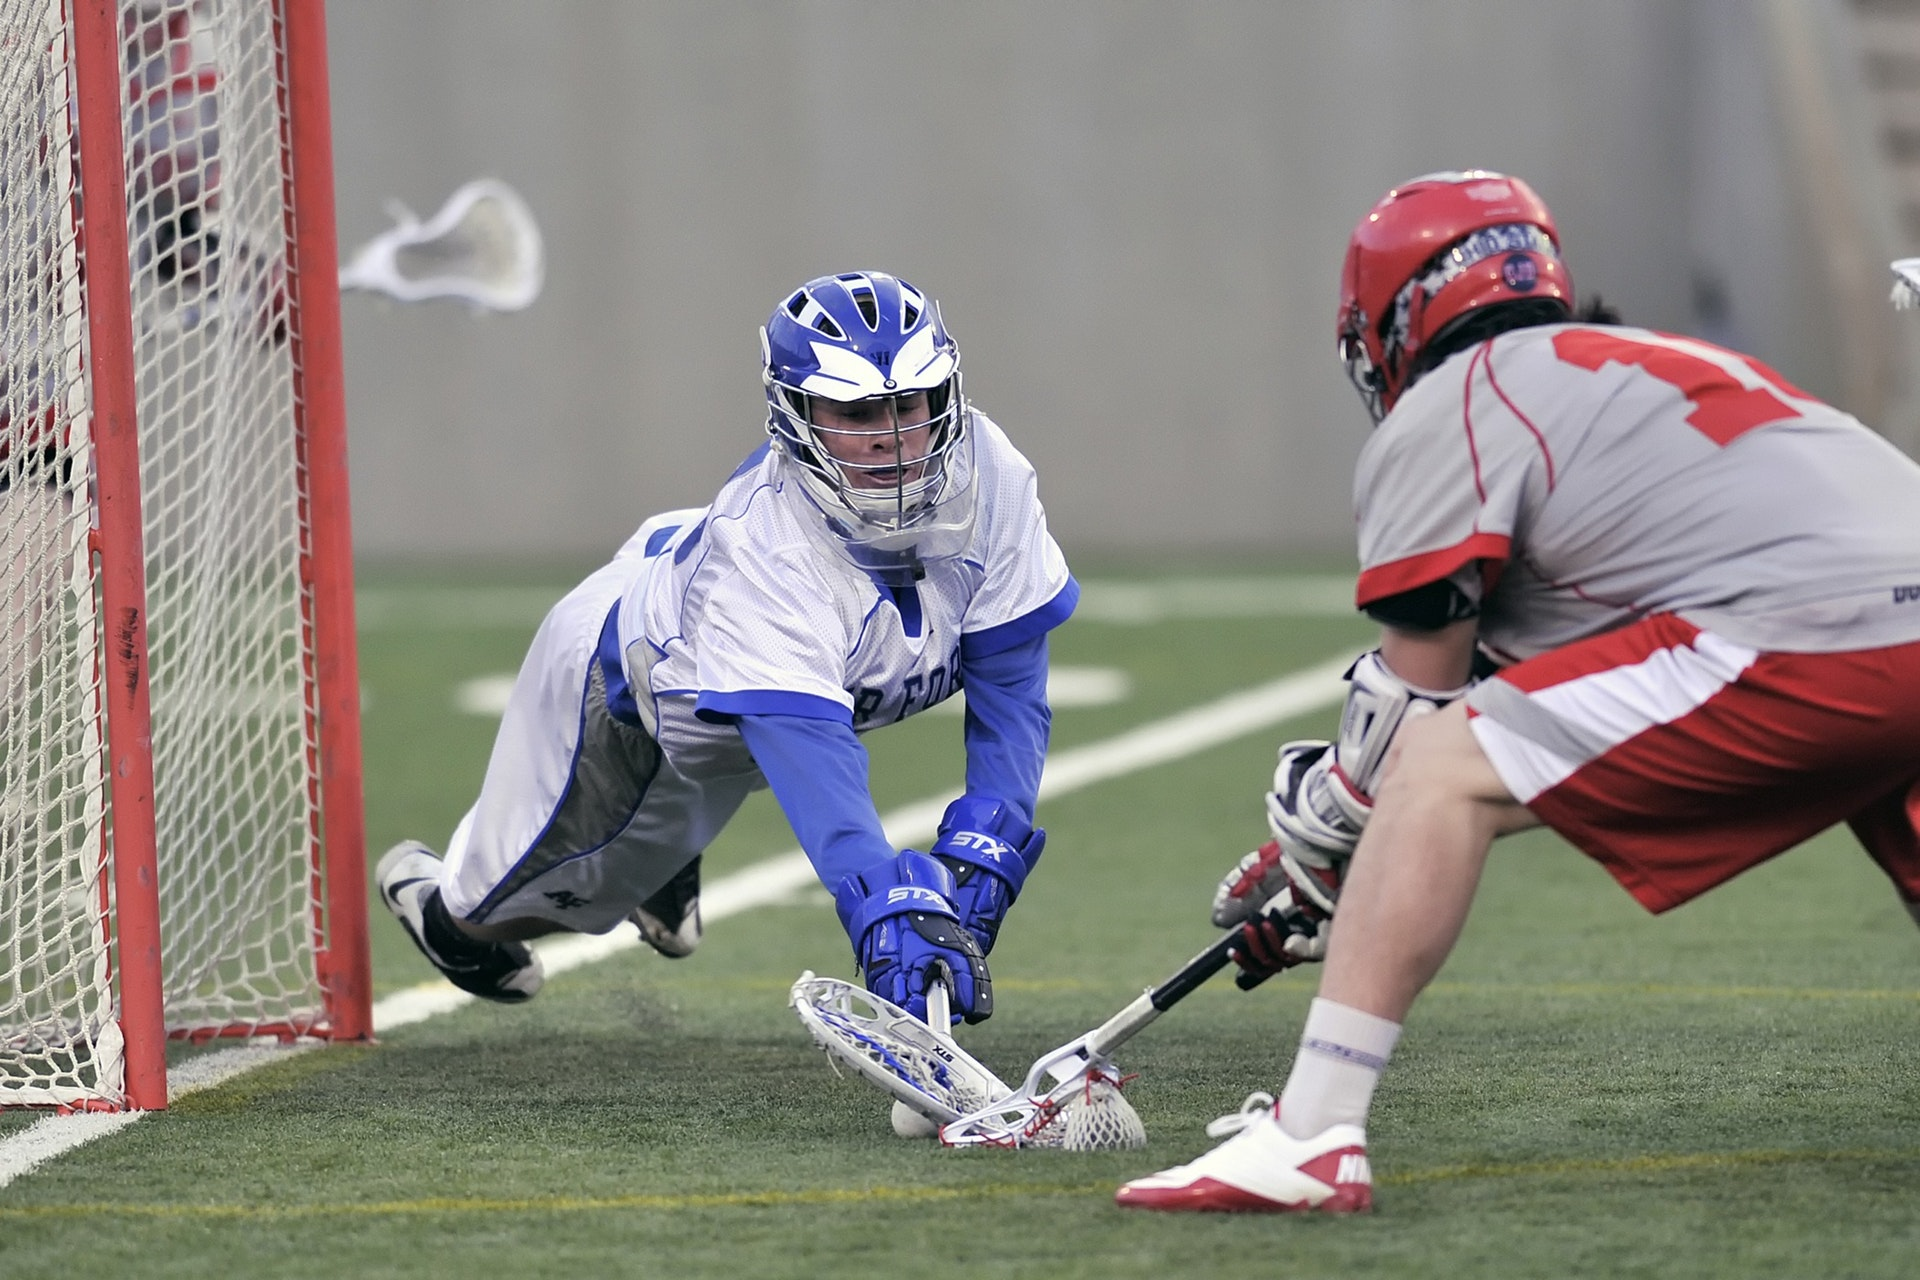 lacrosse-air-force-ohio-state-game-67870.jpeg